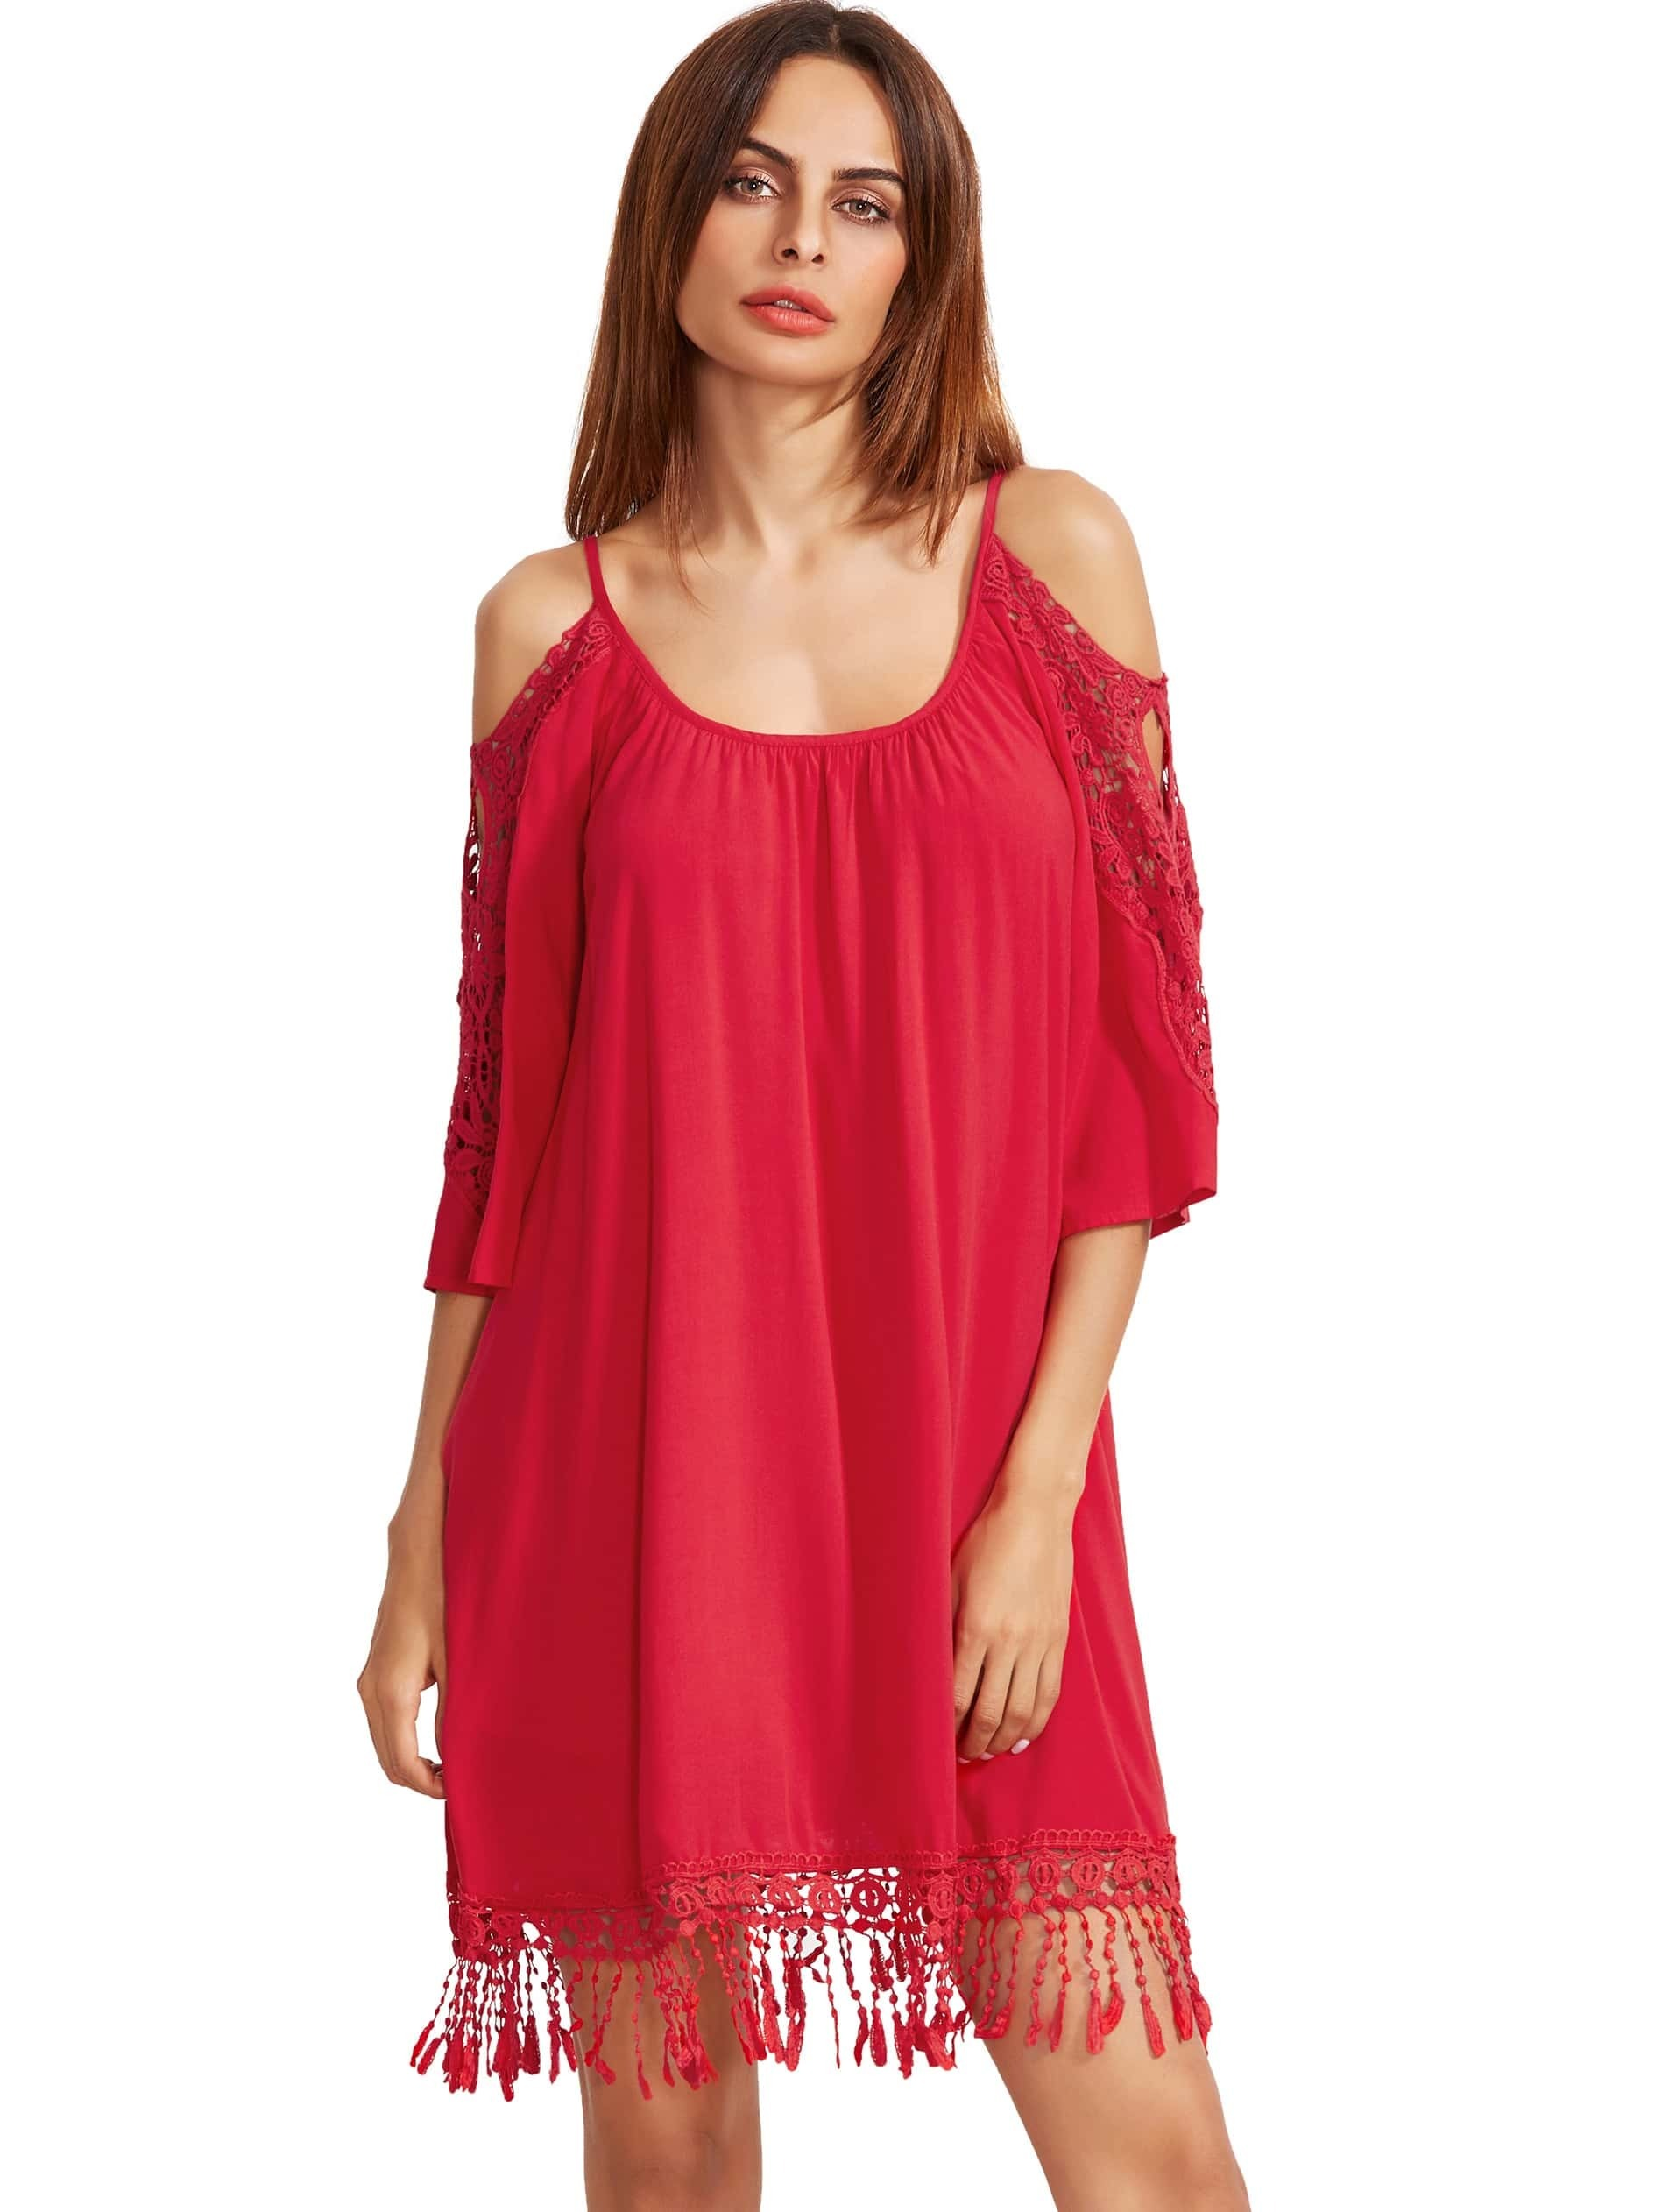 Red Open Shoulder Crochet Lace Sleeve Tassel Dress dress160928589